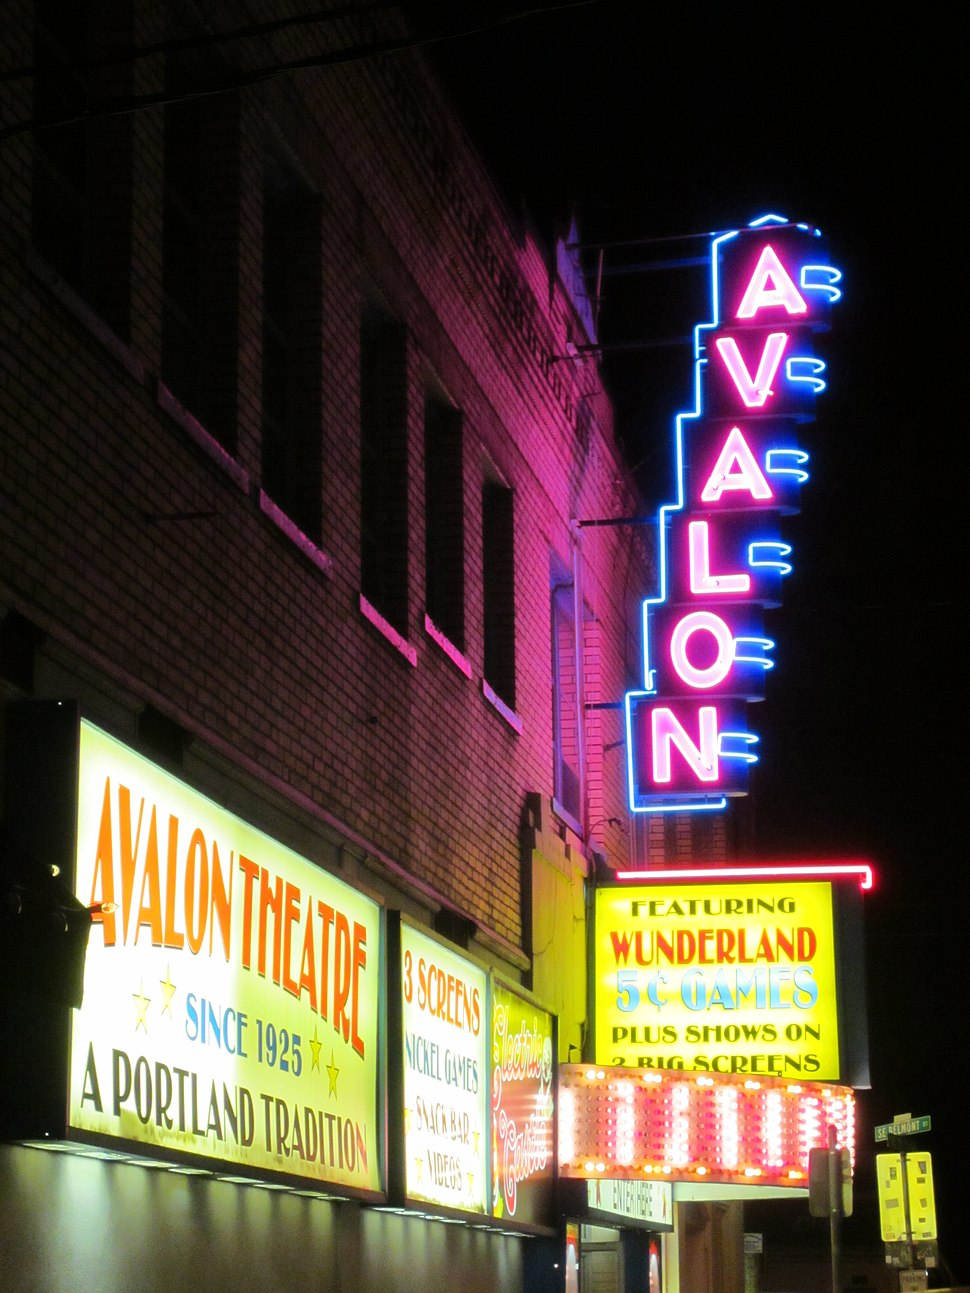 Avalon Theatre, Belmont, Portland, OR 2012